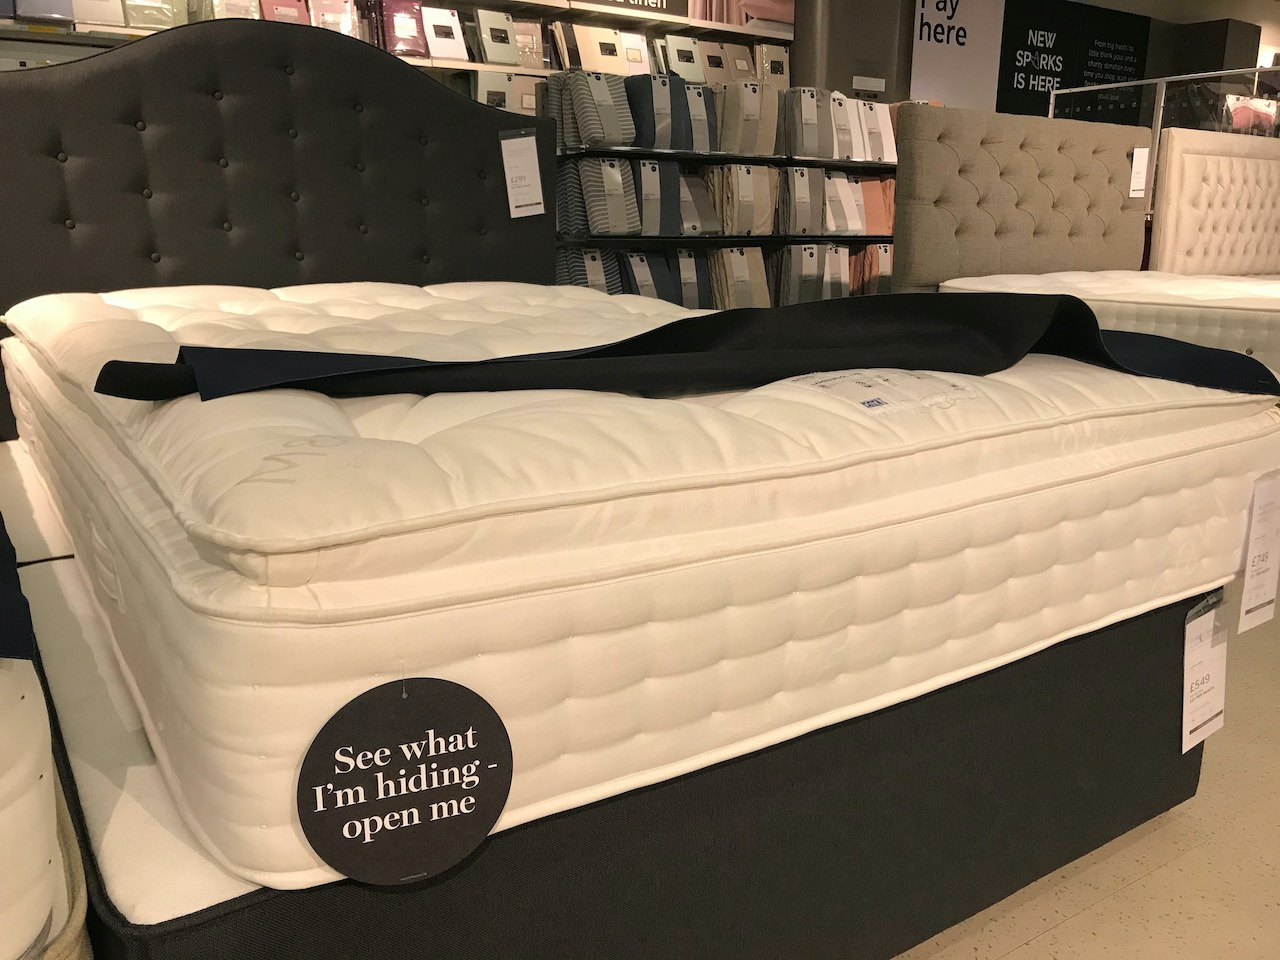 Marks and Spencers Pillow Top Mattresses